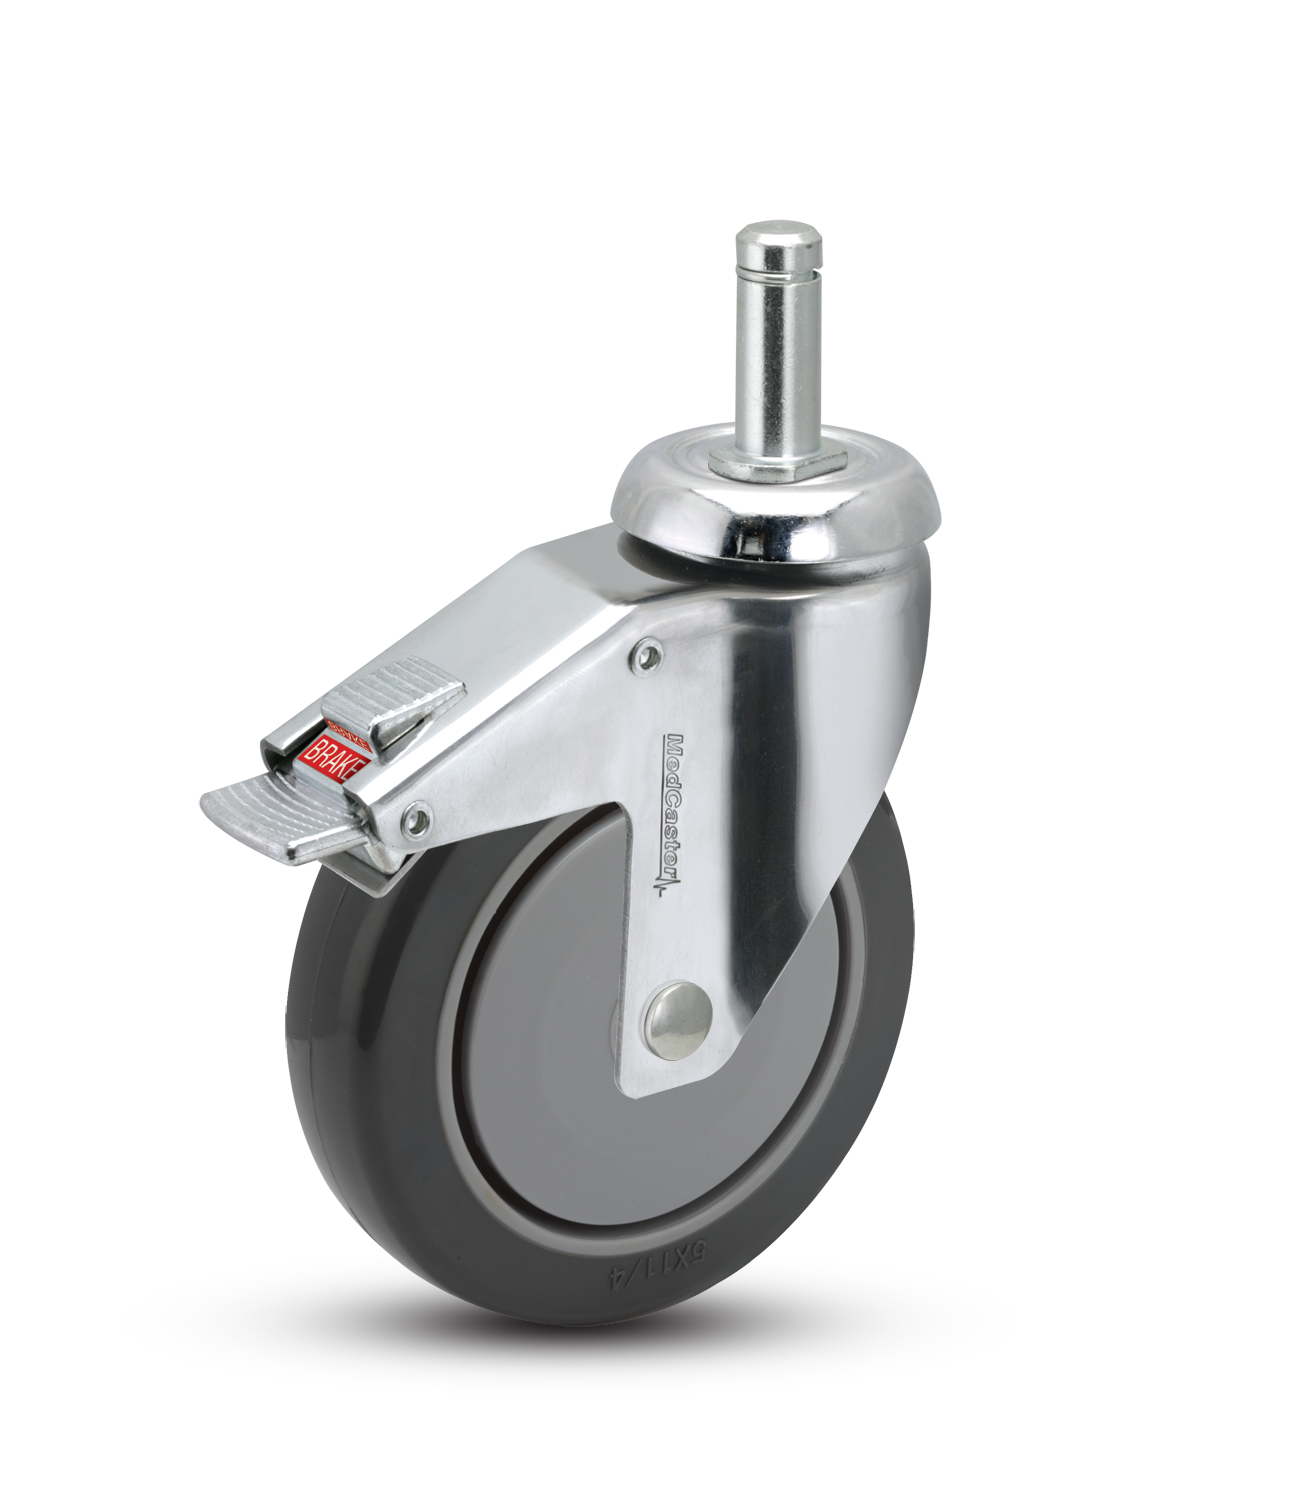 Swivel Caster with a Polyurethane on PolyO wheel, Chrome finish,  Grip Ring connector and total lock